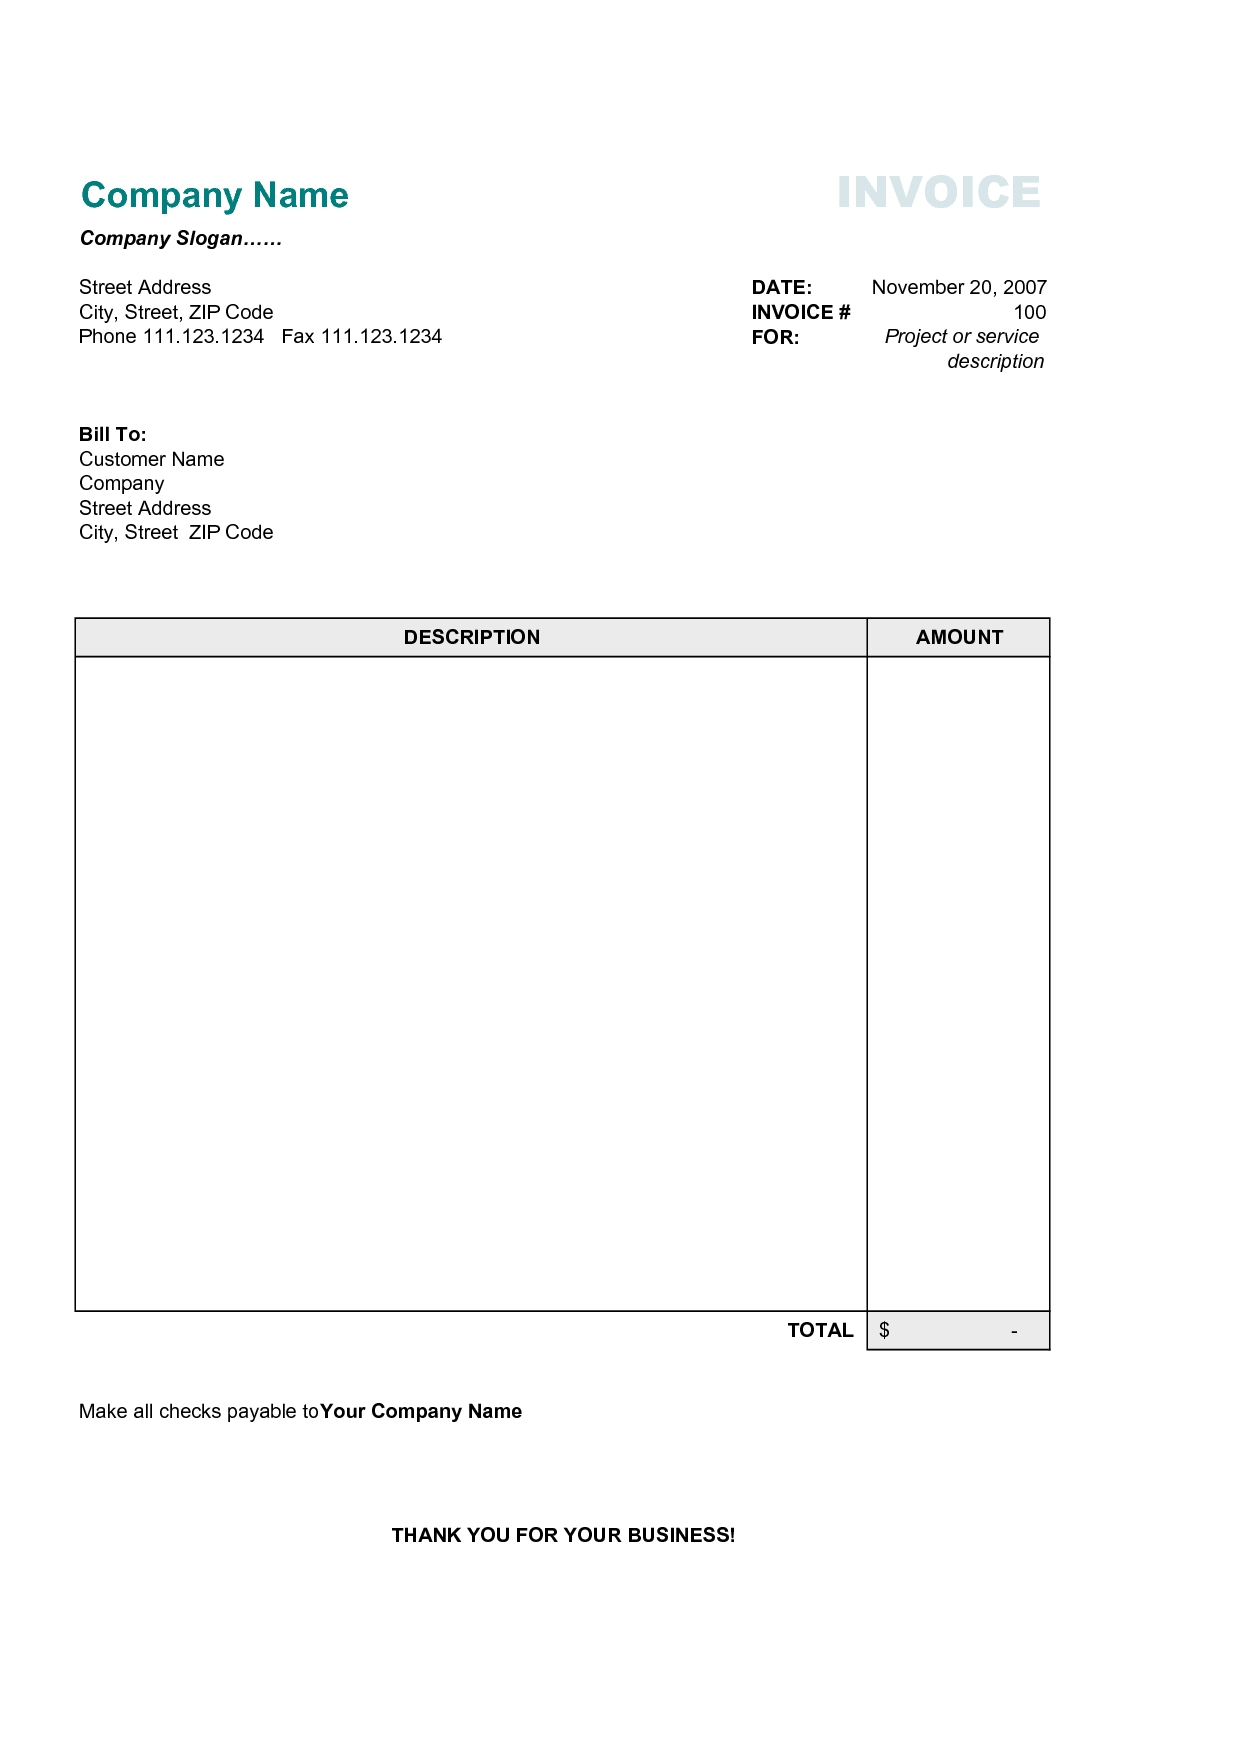 Simple Invoice Templates Insssrenterprisesco - Professional invoice template word